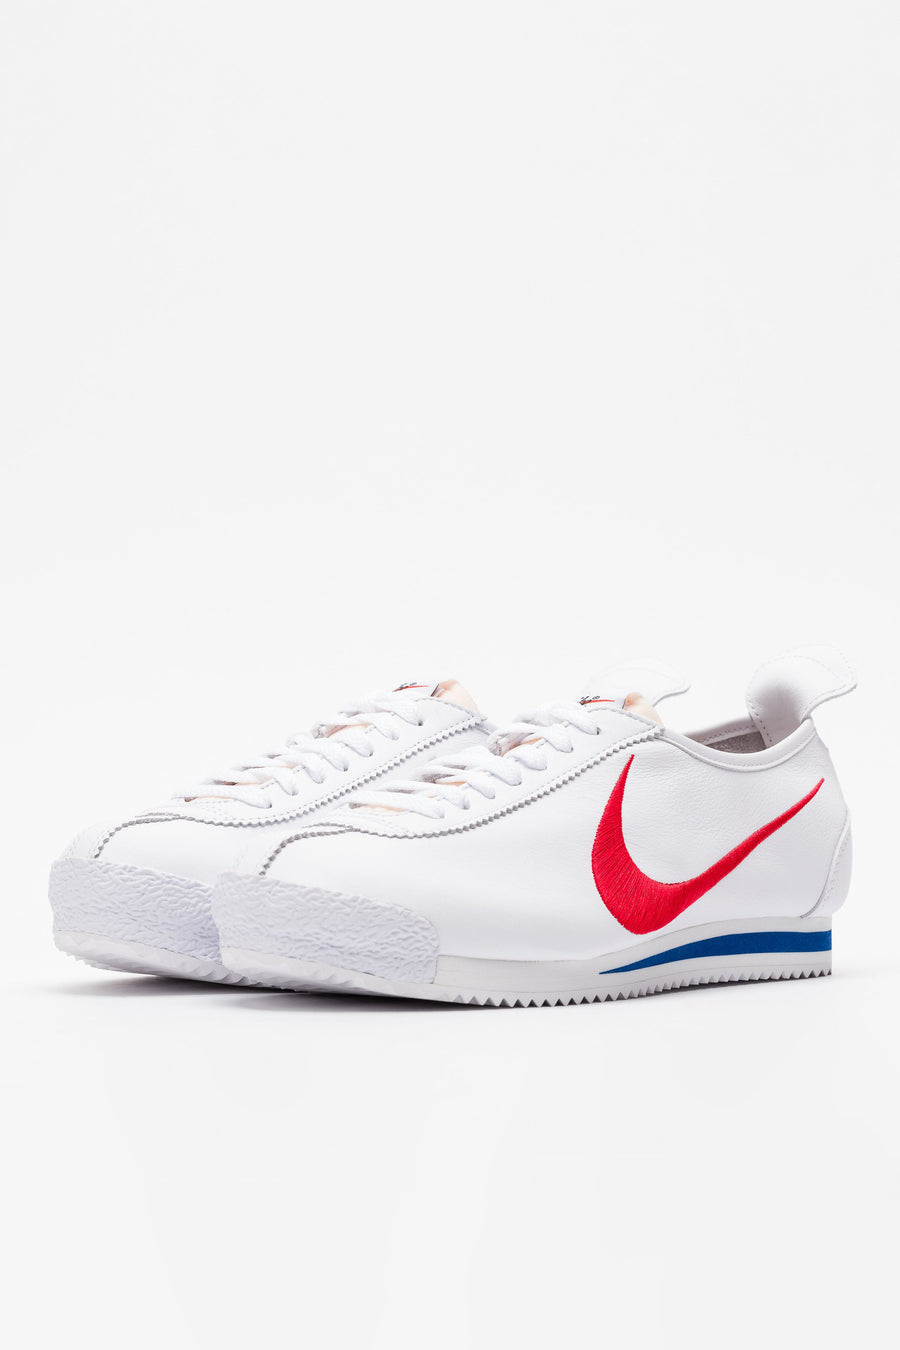 Nike Cortez 72 SD in White/Red/Royal - Notre